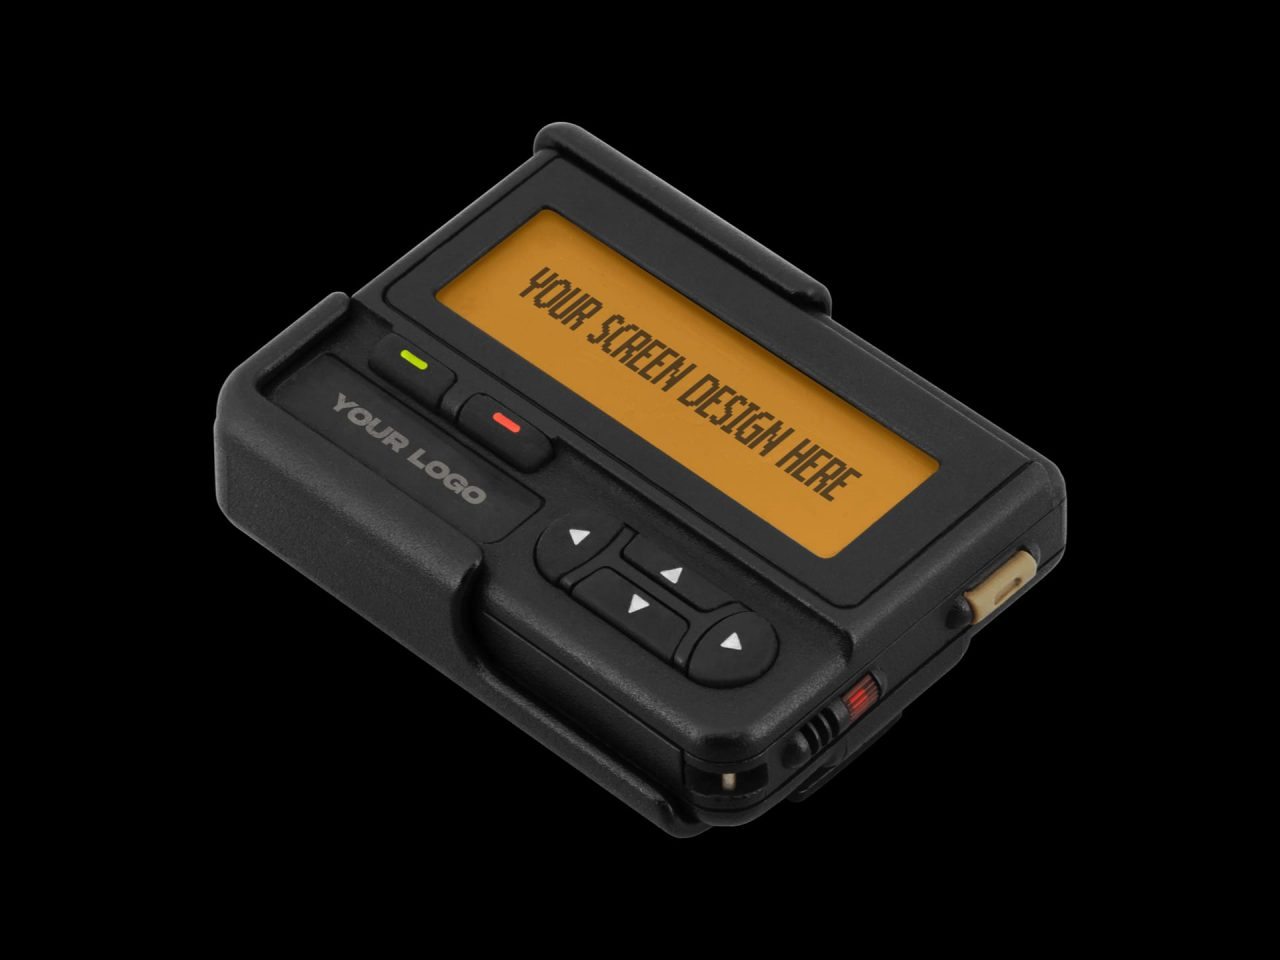 Retro Pager Mockup - Product Image 2